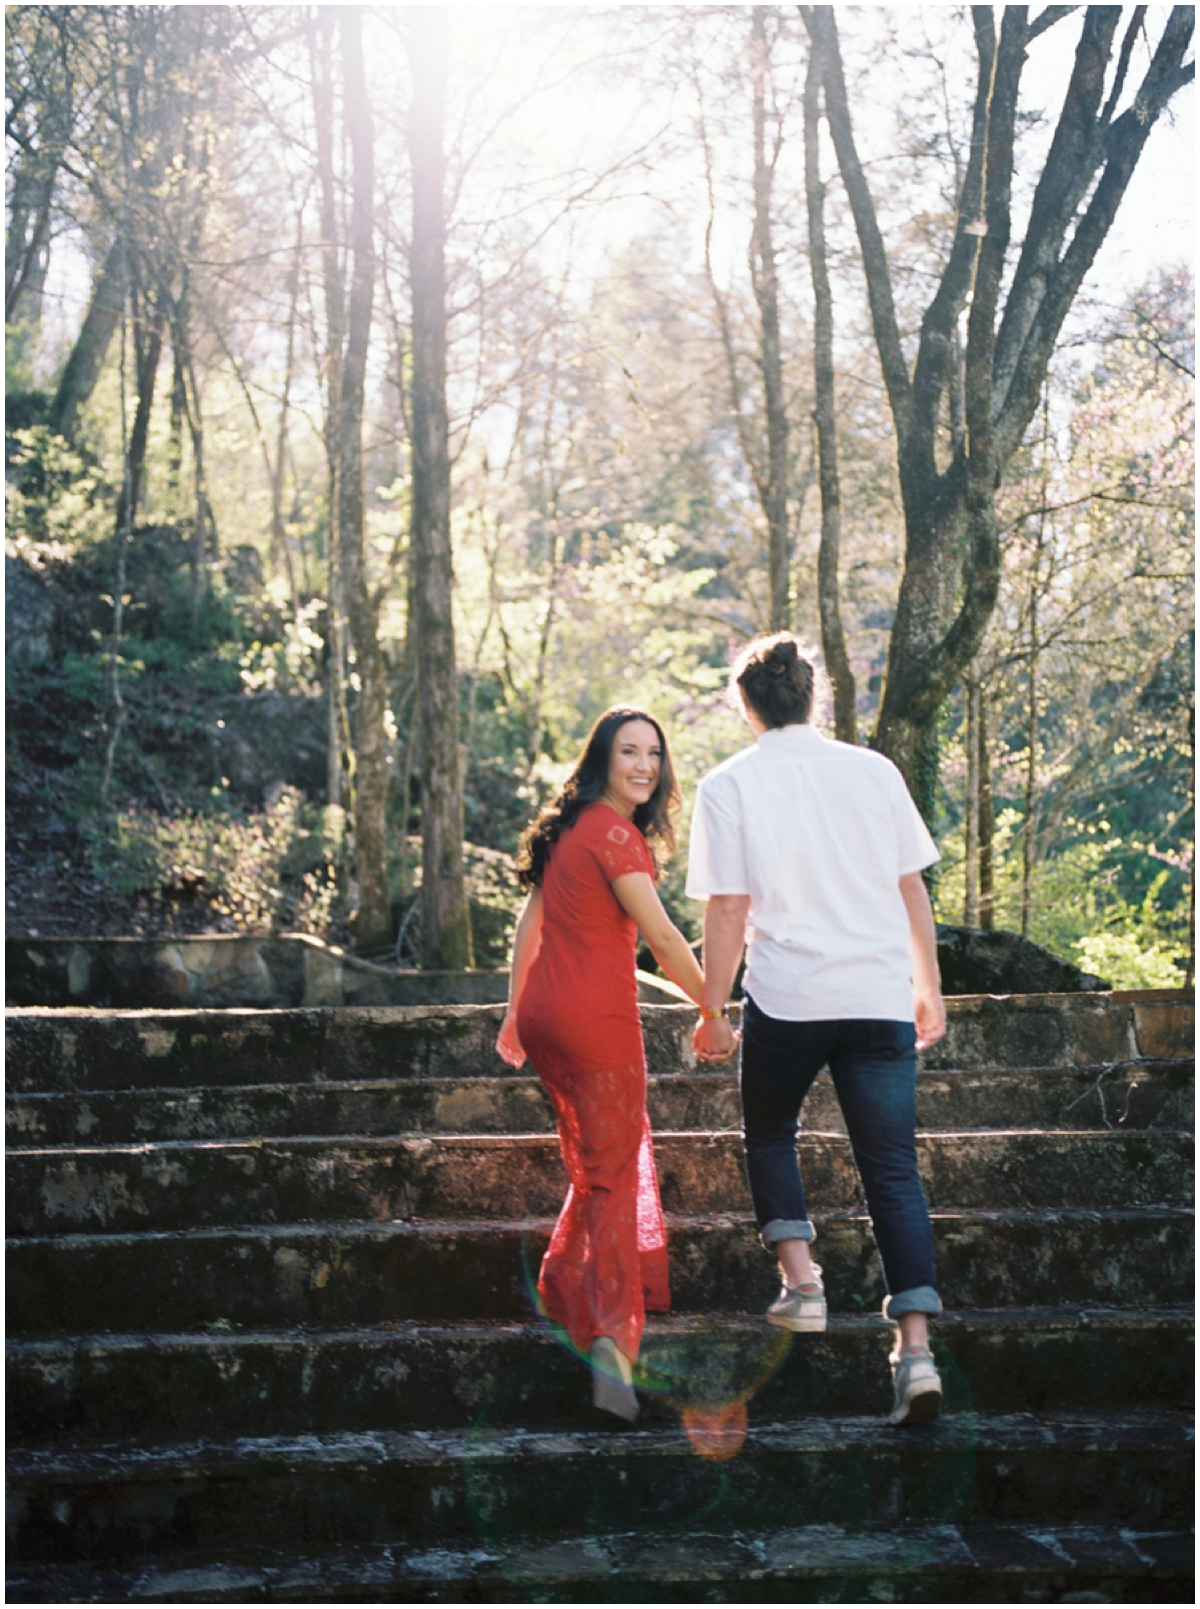 Abigail_Malone_Daras_Garden_Engagement_Film_Photography_KNoxville-2.jpg